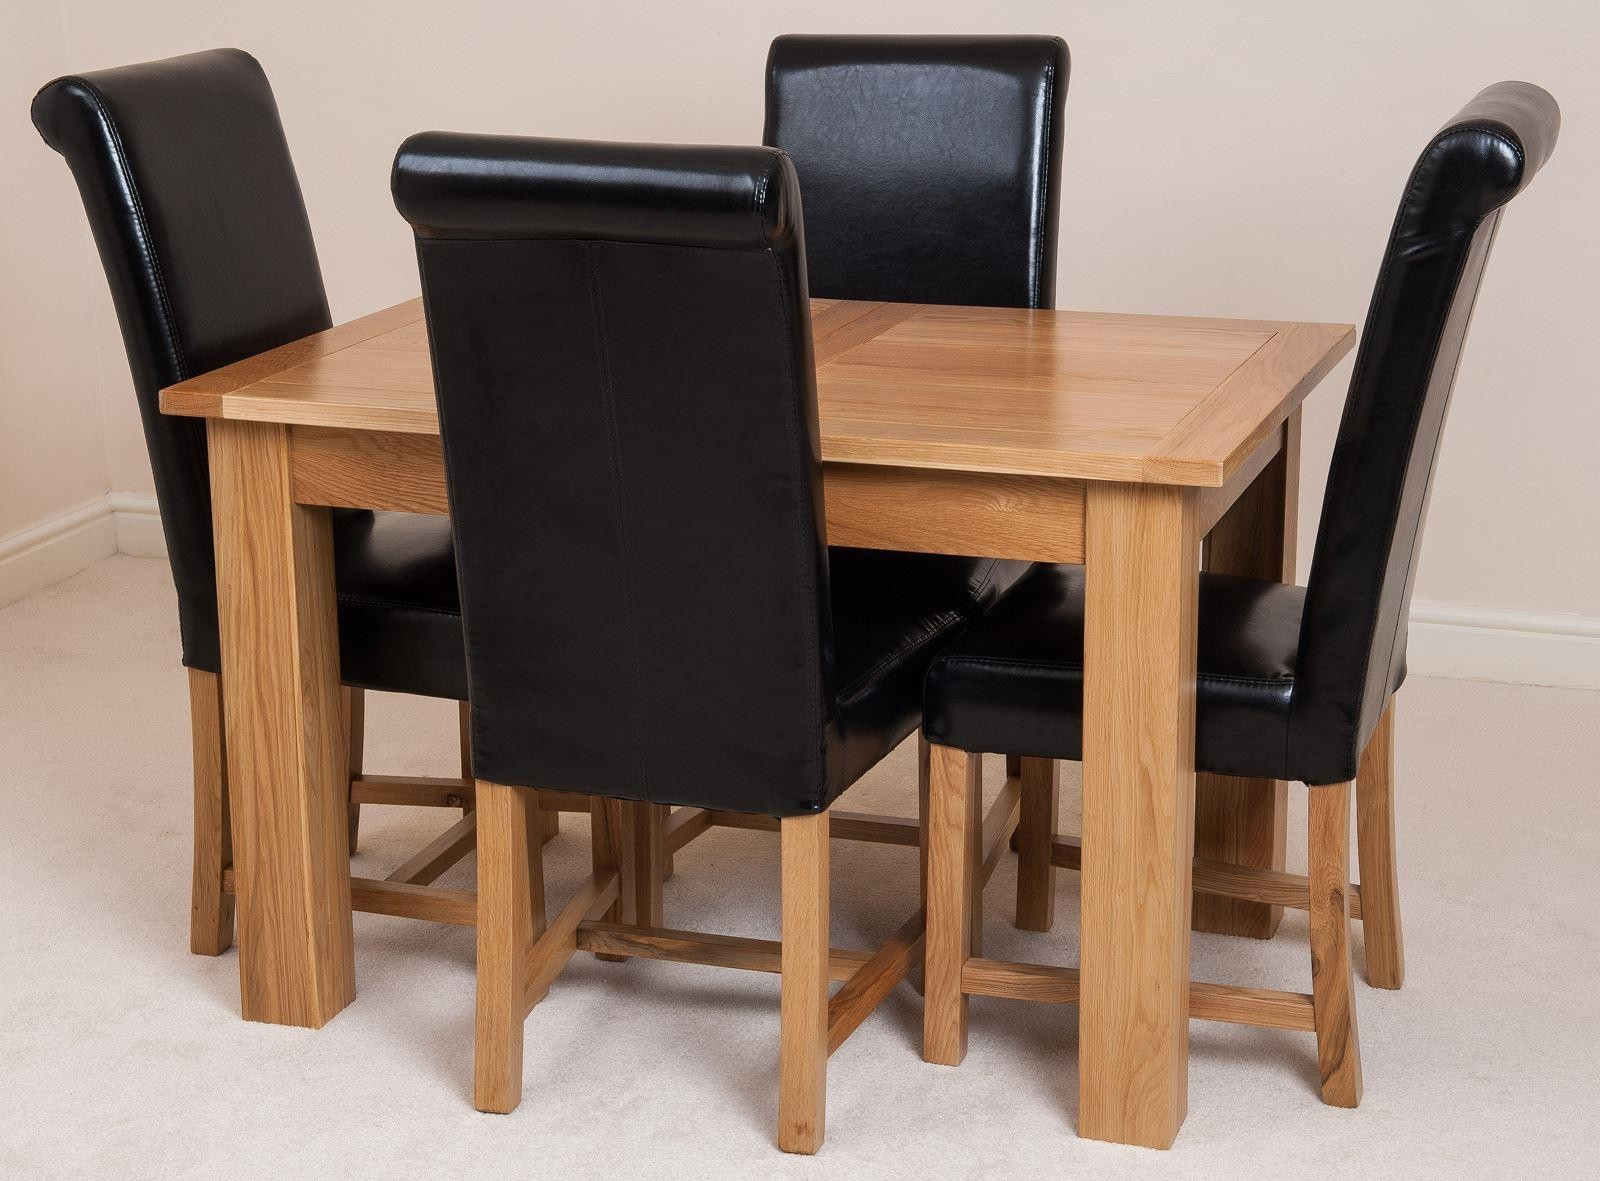 Hampton Extending Rustic Oak Dining Table With 4 Black With Regard To Most Recent Nazan 46'' Dining Tables (View 11 of 15)